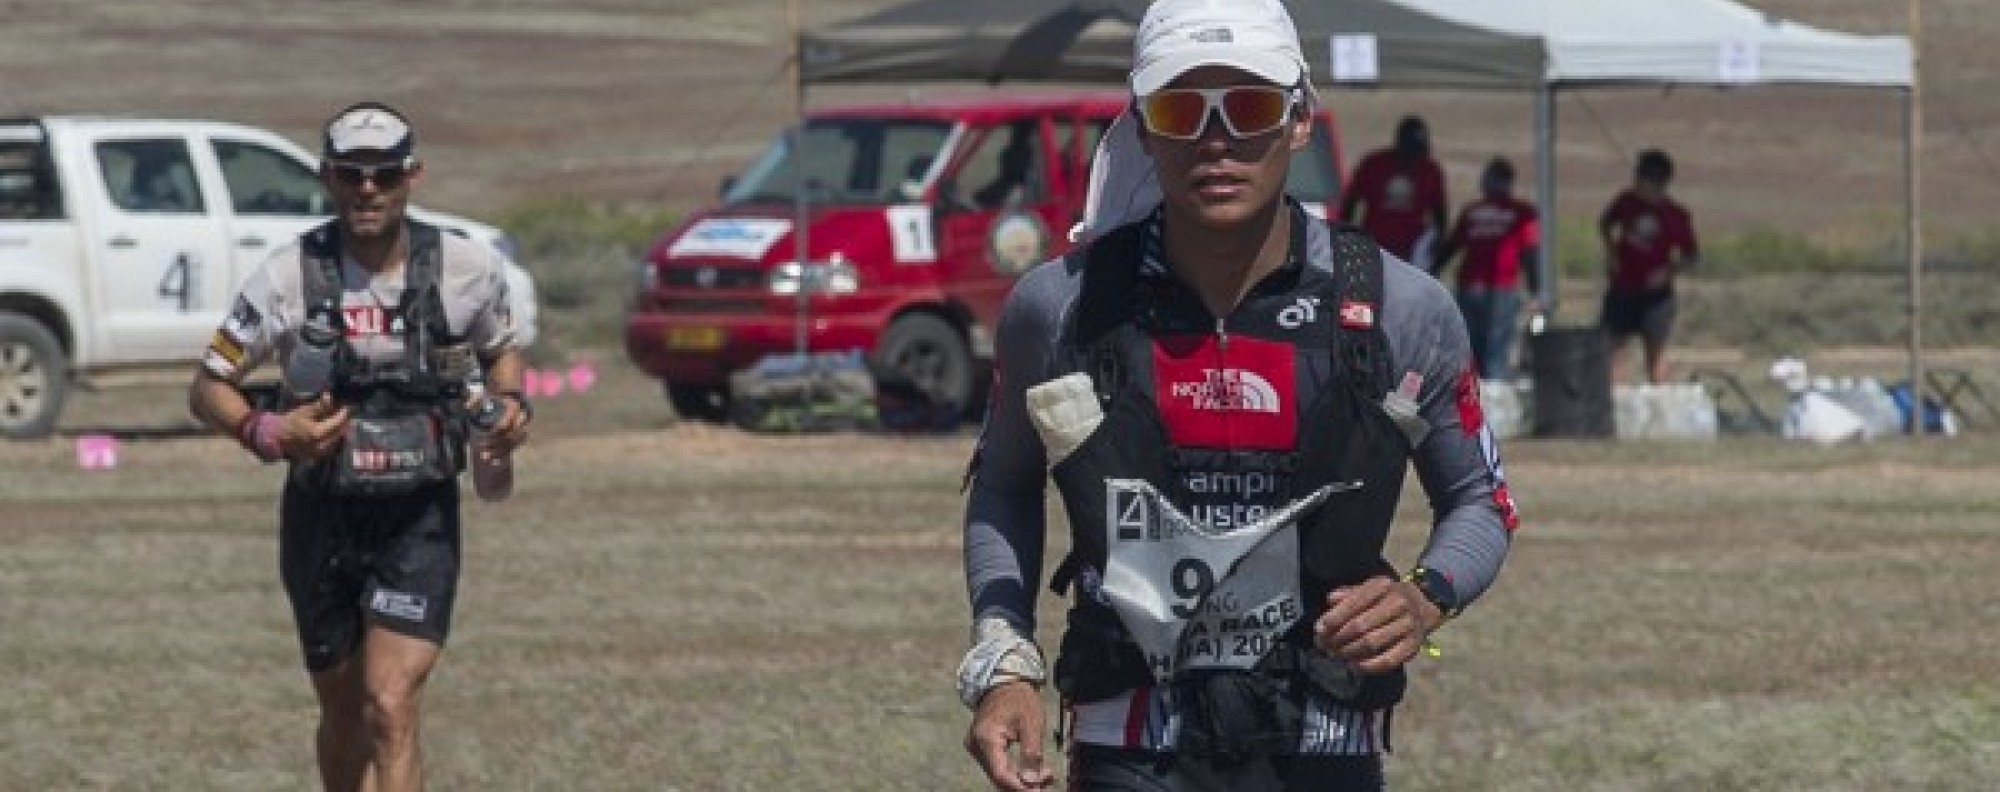 Wong Ho Chung leads Garcia Beneito Vicente, but ultimate succumbs to the Spaniard's experience. Photos: 4 Deserts Race Series